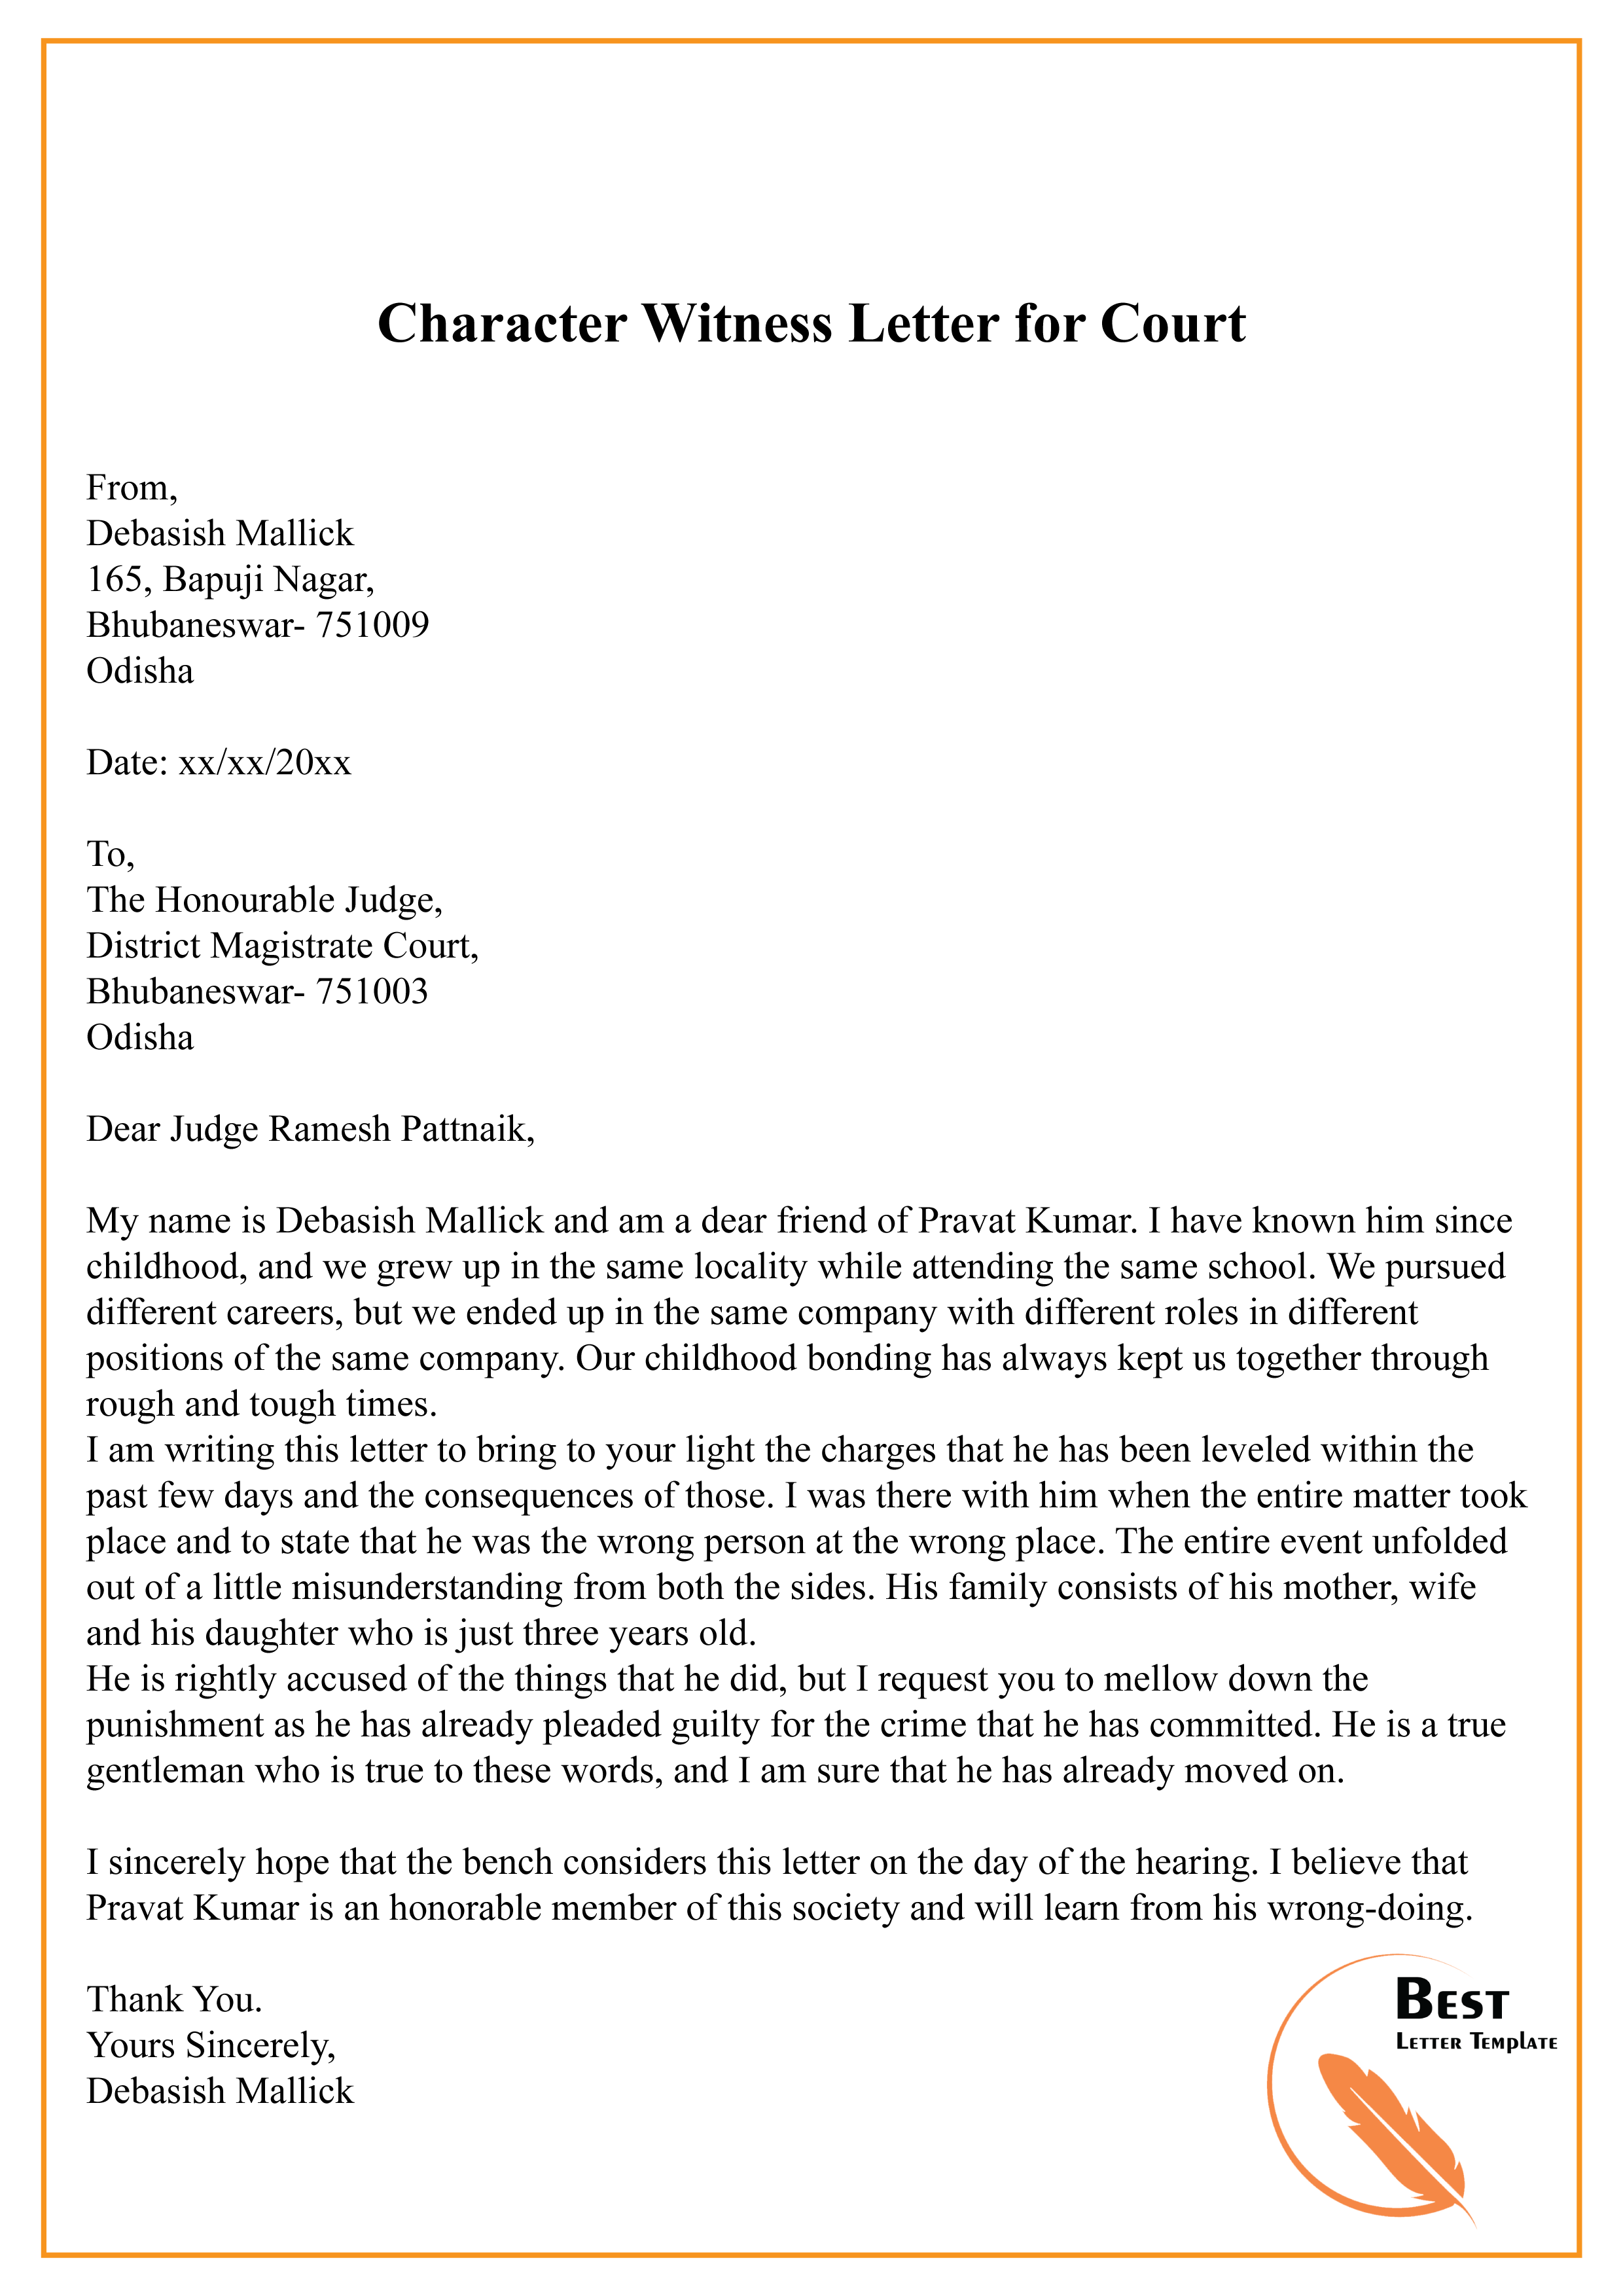 Witness Letter For Court from bestlettertemplate.com